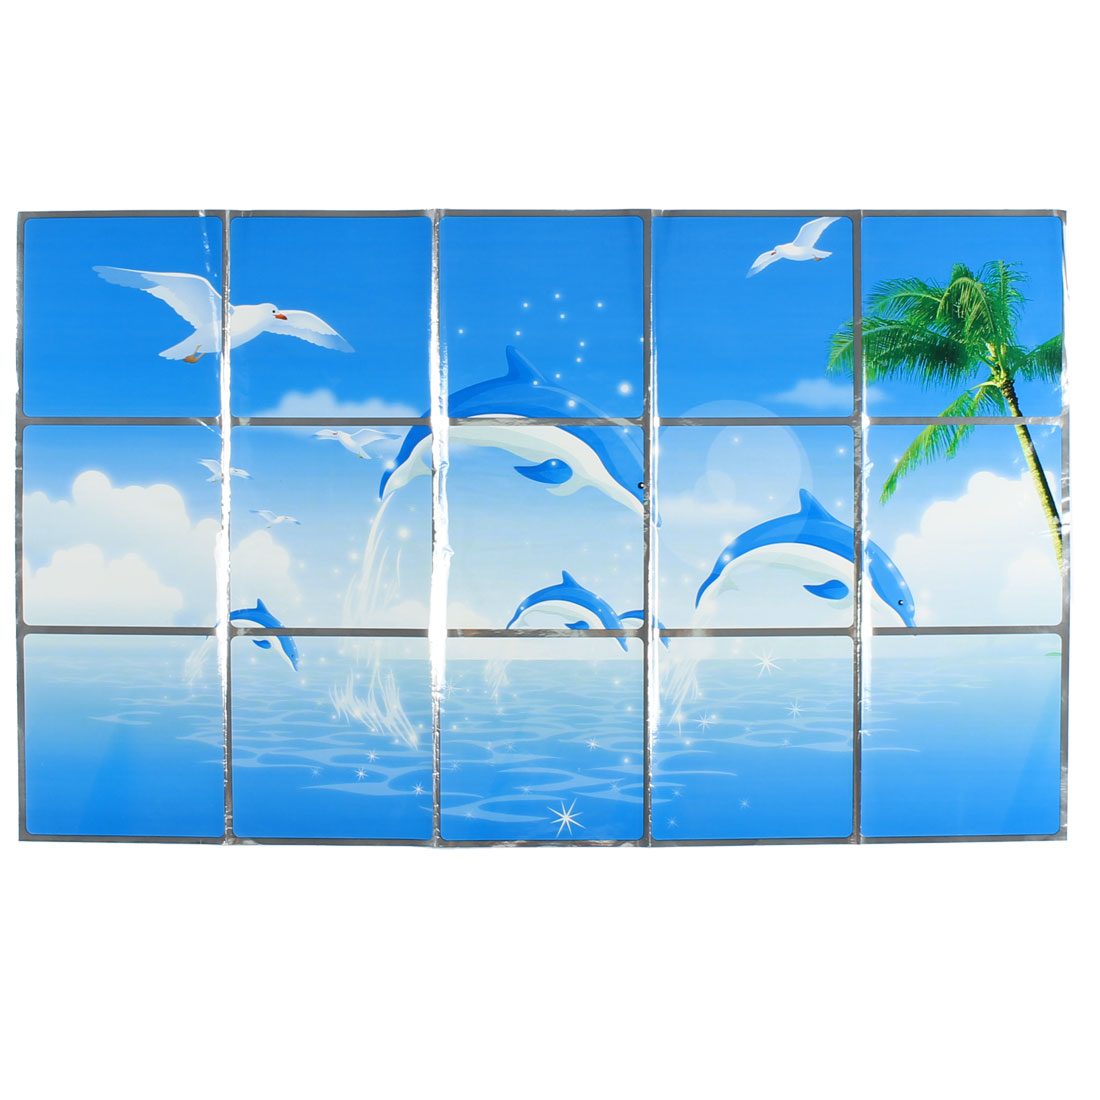 Kitchen Dolphins Pattern Removable Self-adhesive Oilproof Wall Window Sticker 75 x 45cm